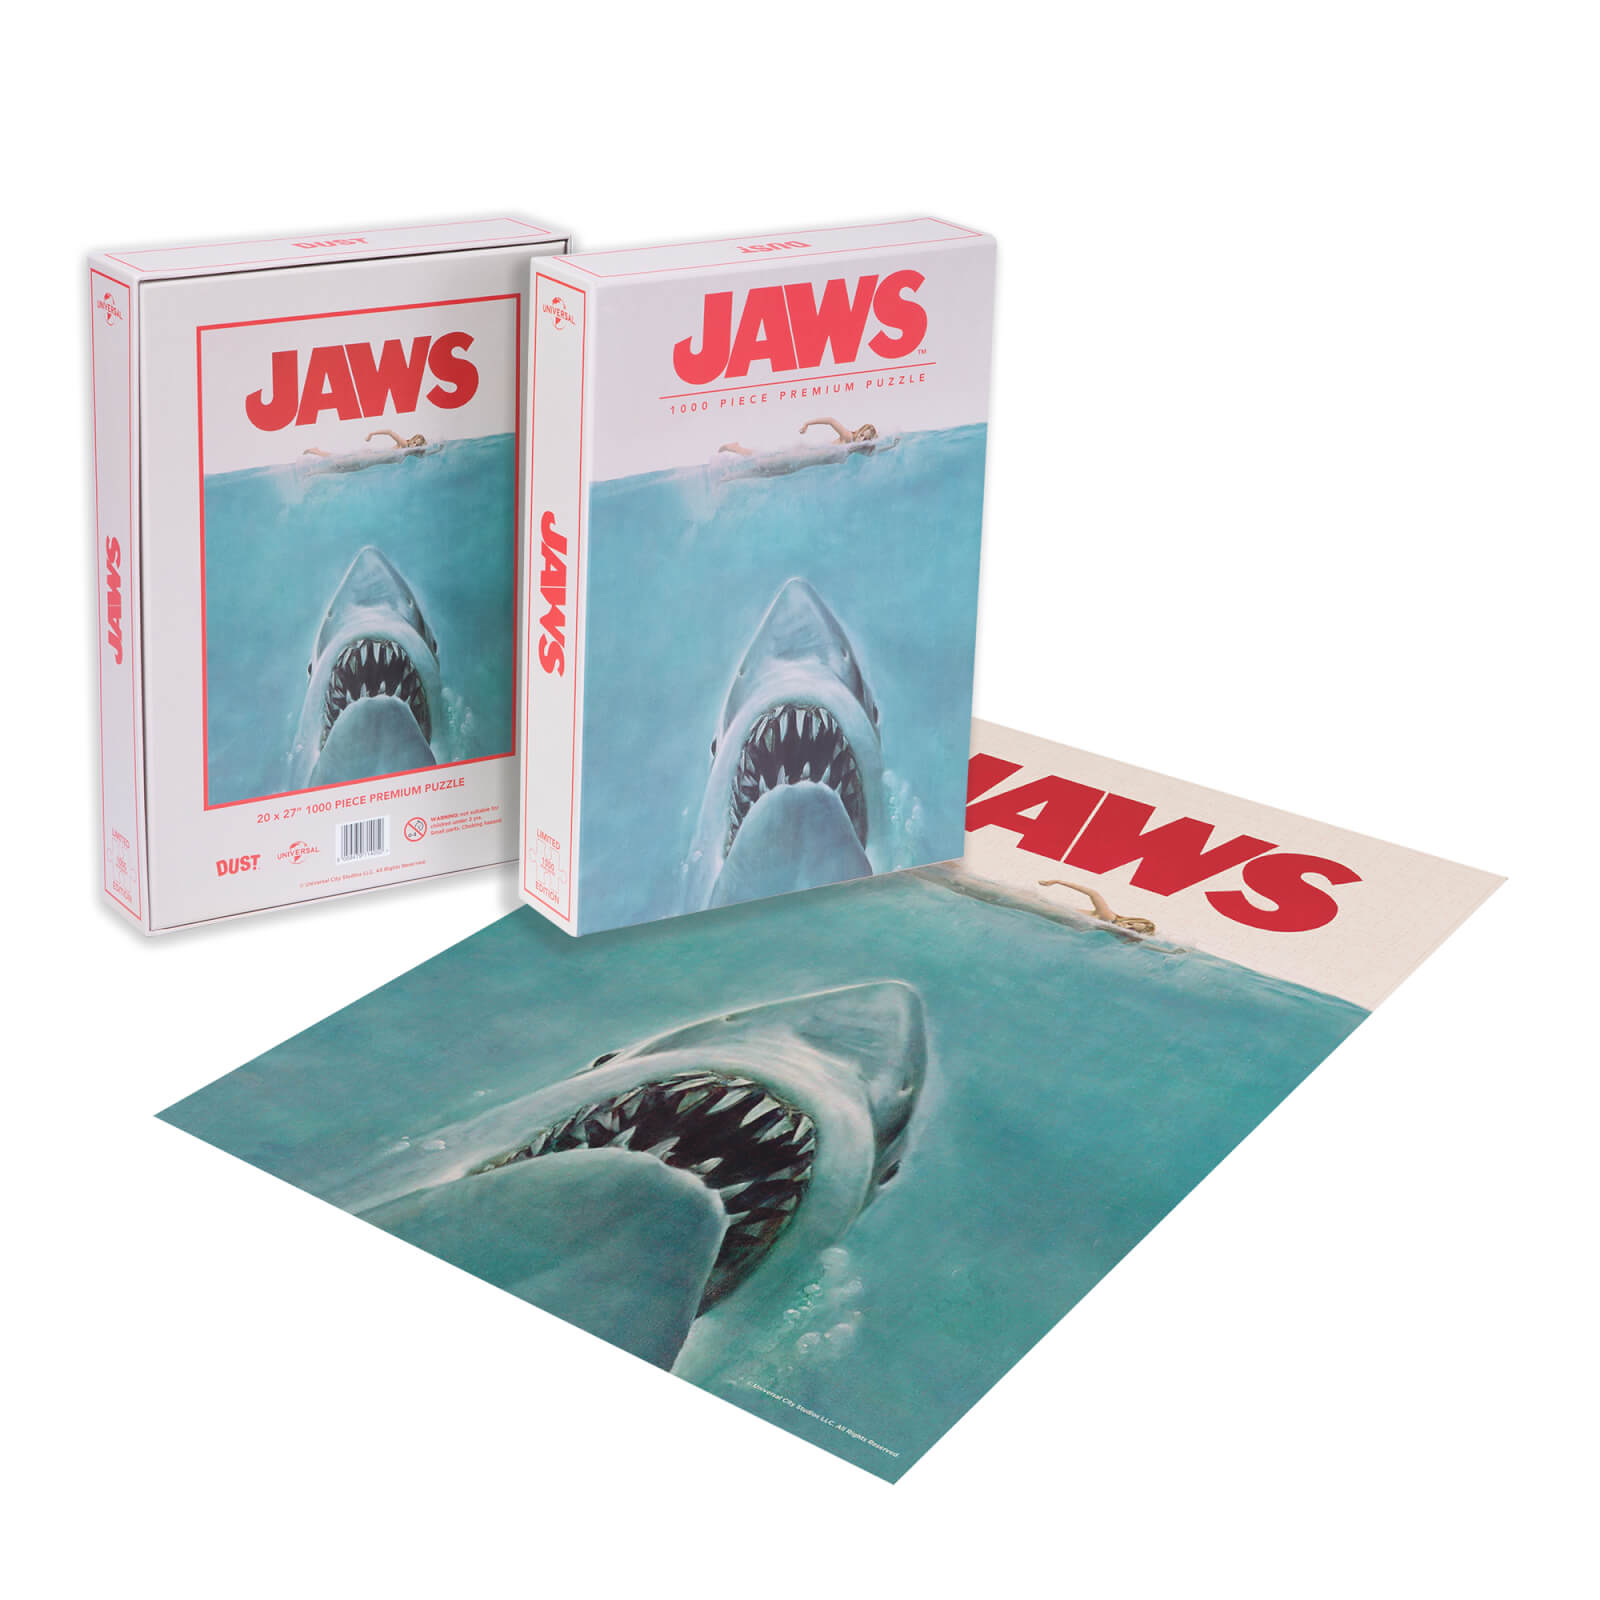 Image of Dust! Jaws Classic Movie Poster 1000pc Puzzle - Zavvi Exclusive